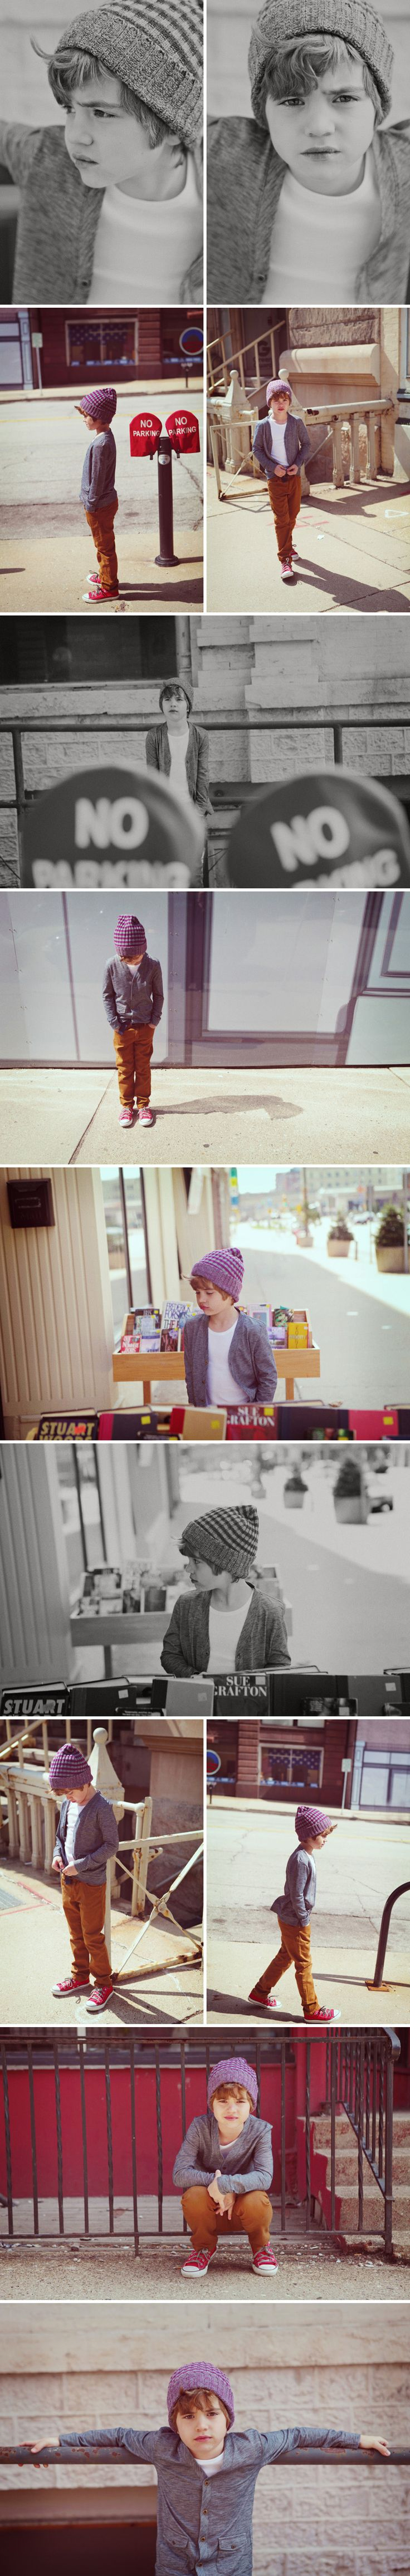 Cute photo series! Love his outfit :)